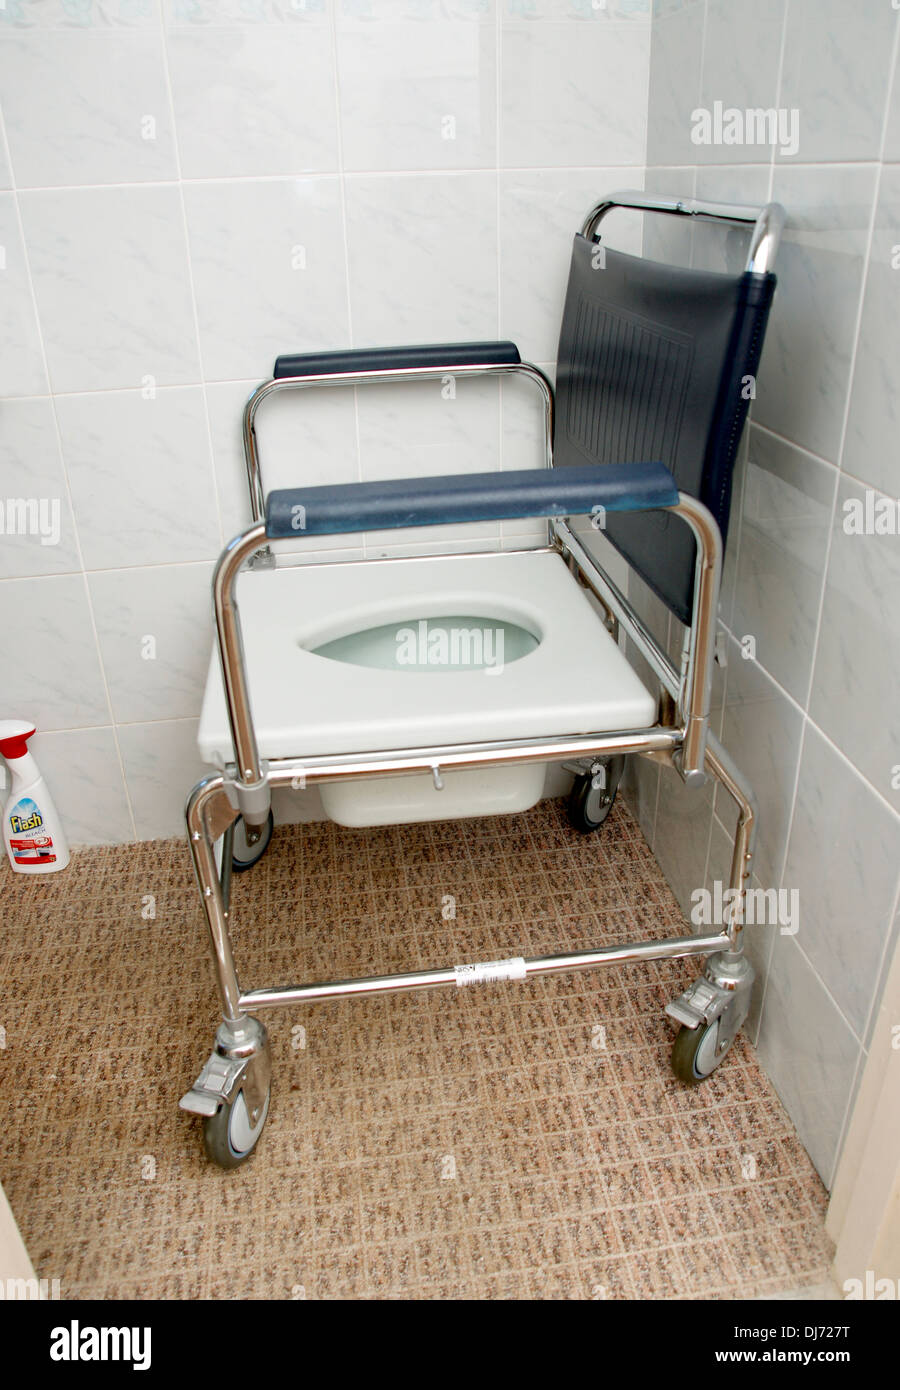 Disabled Toilet And Shower Stock Photos & Disabled Toilet And Shower ...